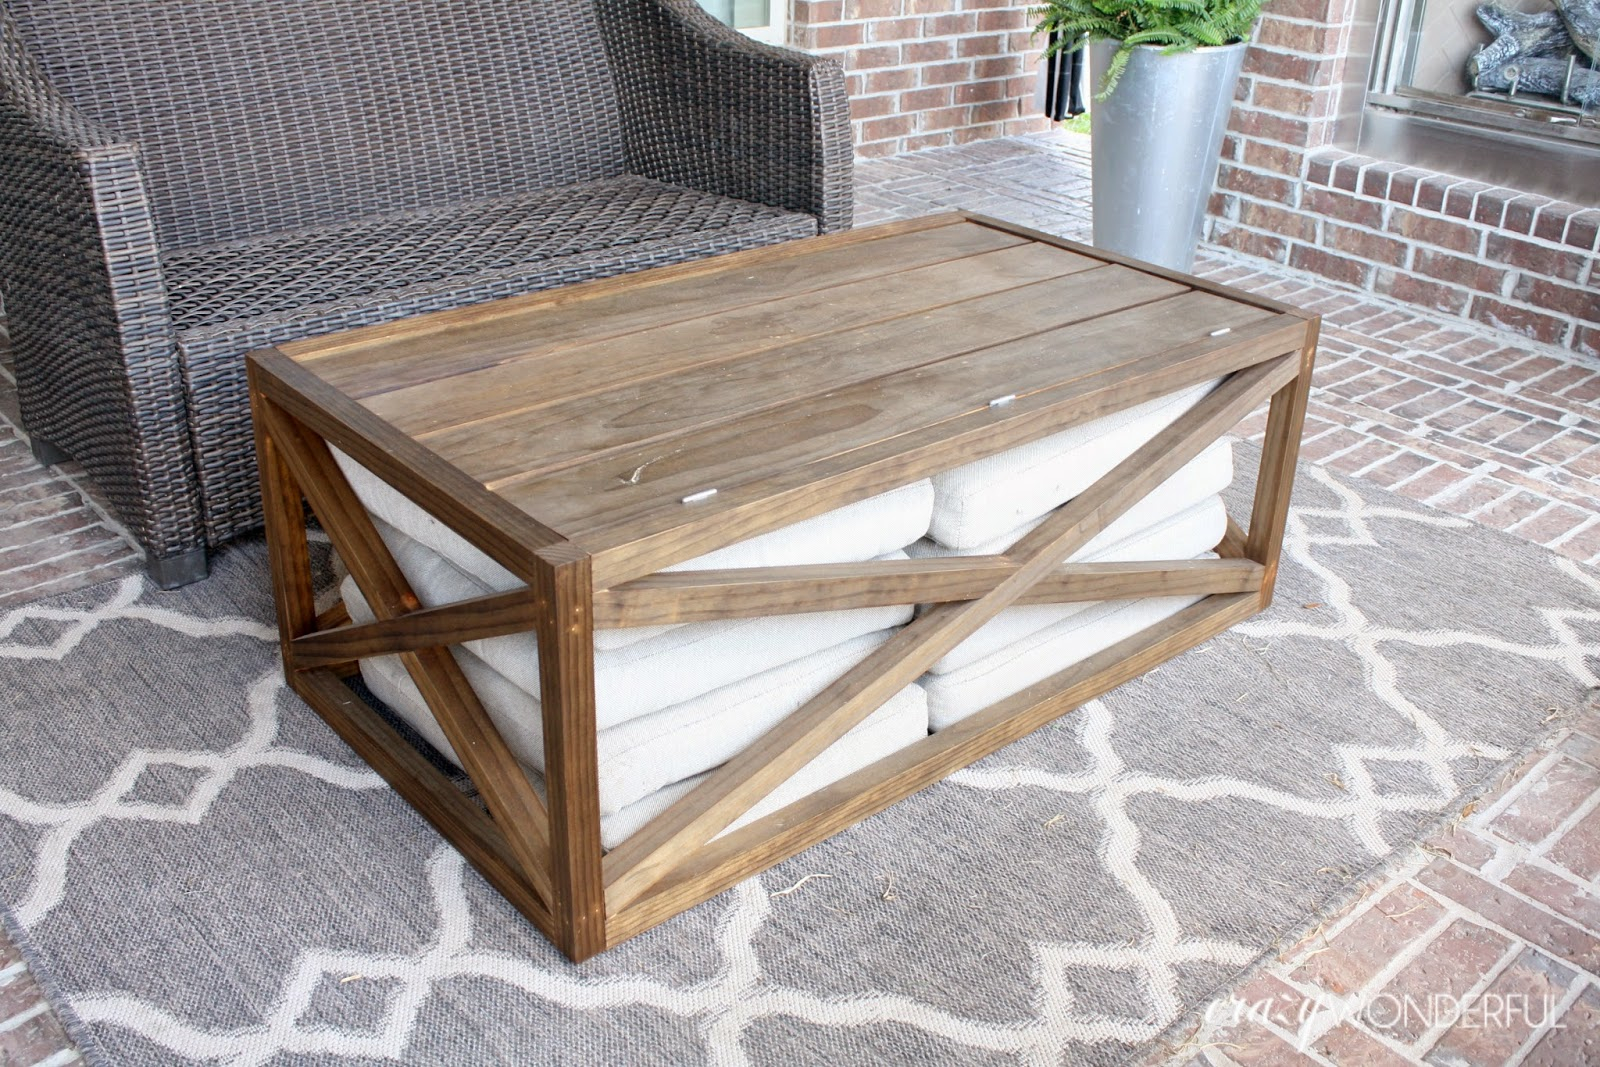 patio side table home decor ideas editorial ink wonderful outdoor coffee catchy high resolution lollagram exterior design remarkable tures best engine small furniture honey oak